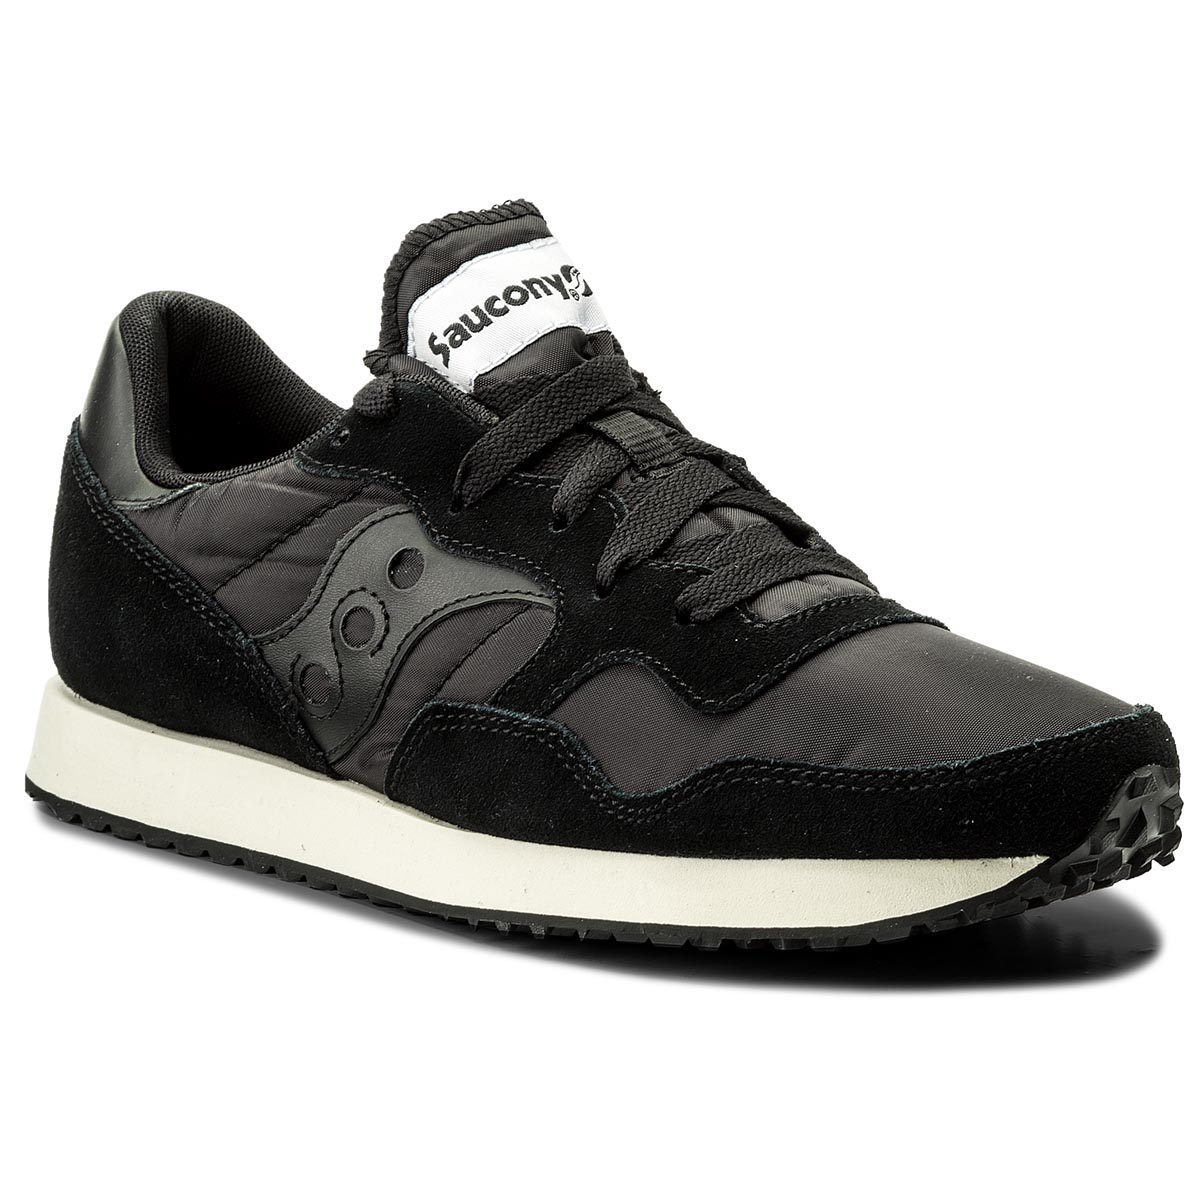 Sneakers SAUCONY - Dxn Trainer Vintage S70369-29 Blk